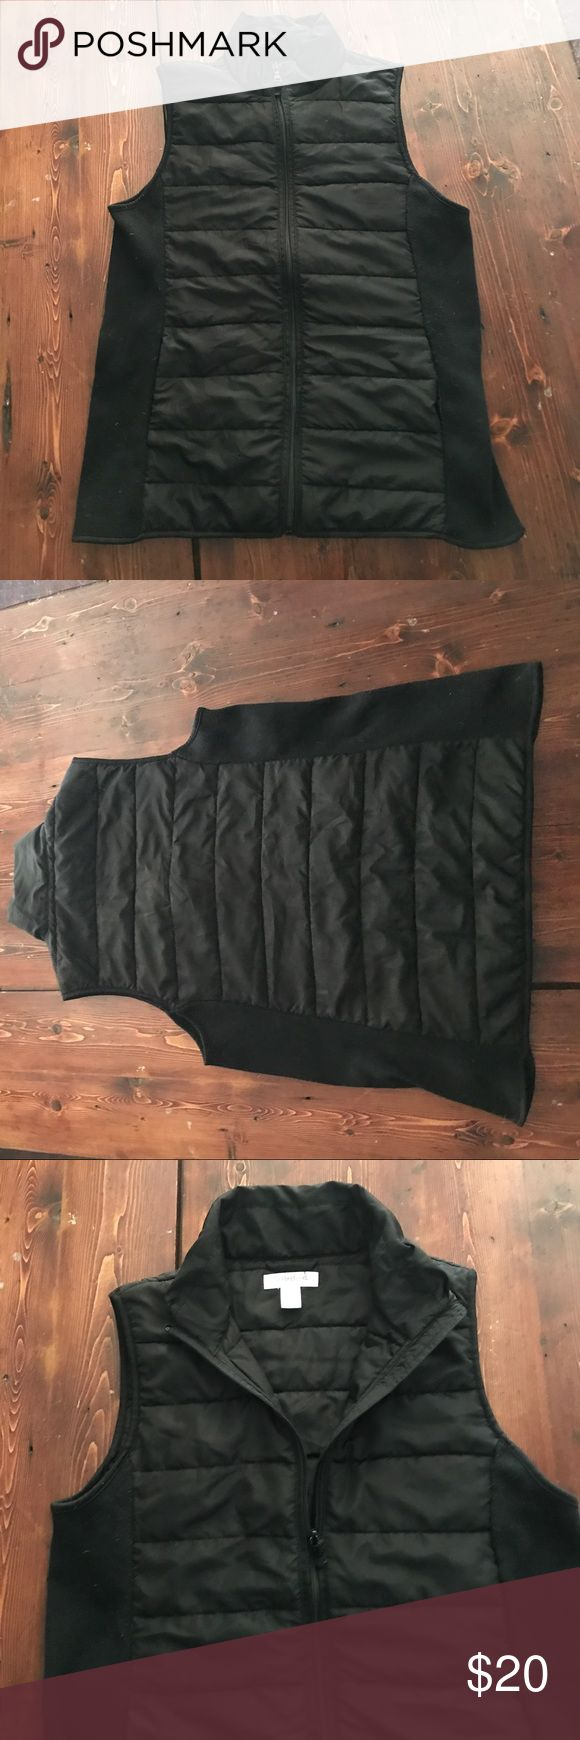 Puffer vest Black puffer vest from Motherhood (maternity). It does NOT look like a maternity vest. The side panels stretch to accommodate a growing bump but a size L woman could easily wear this without a baby bump. Gently worn. Motherhood Jackets & Coats Vests